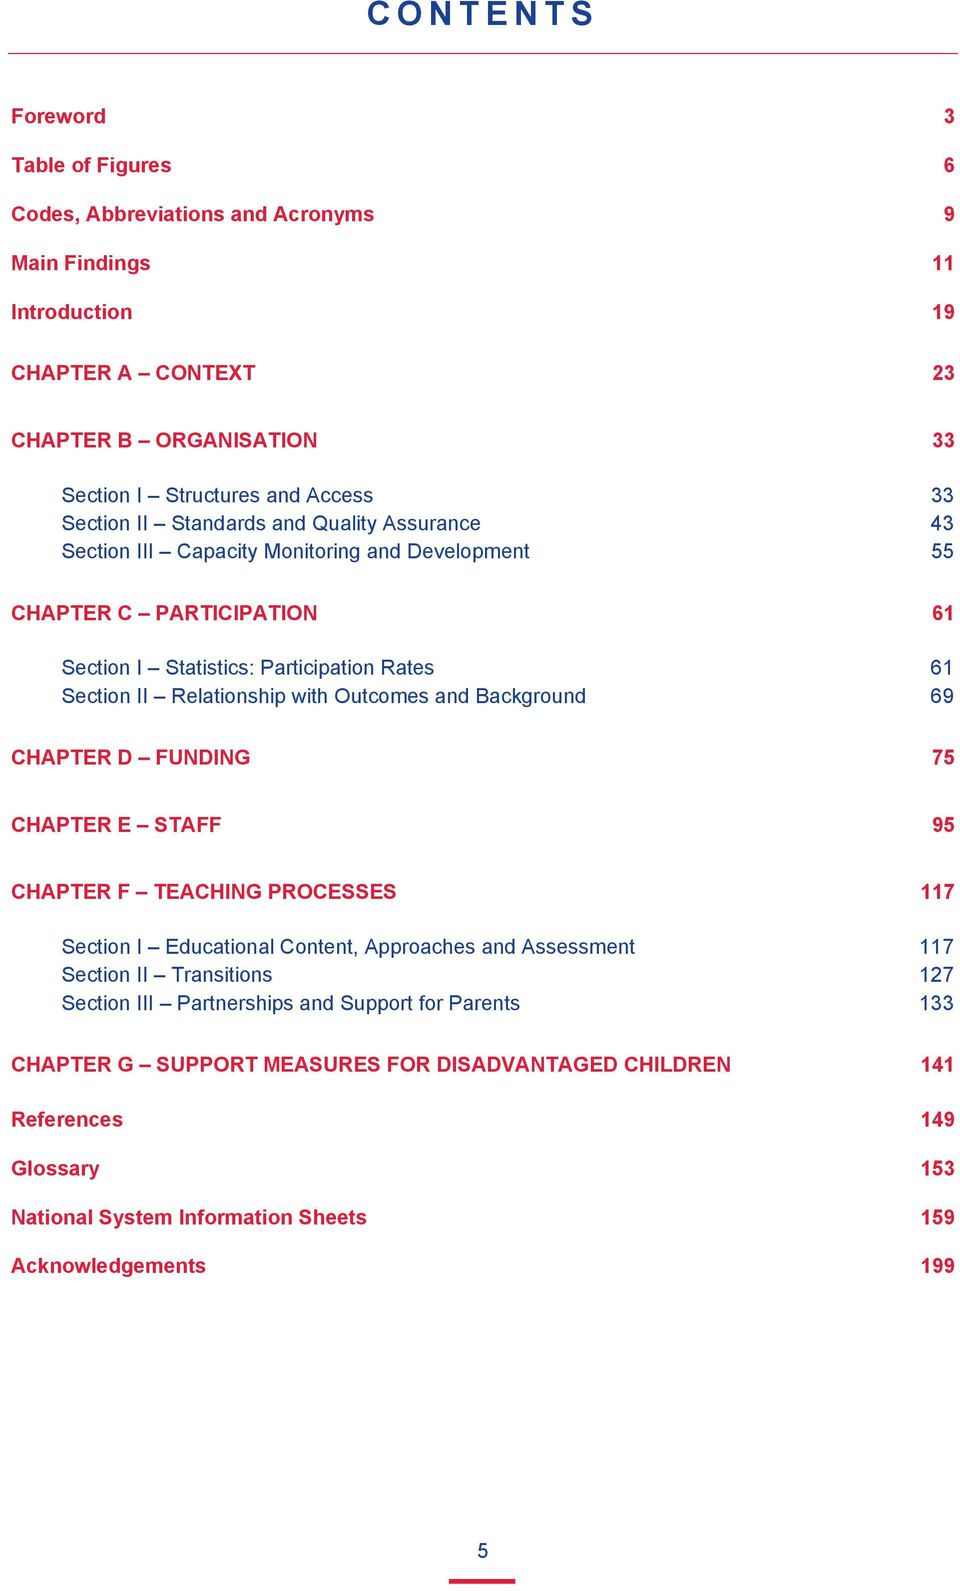 with Outcomes and Background 69 CHAPTER D FUNDING 75 CHAPTER E STAFF 95 CHAPTER F TEACHING PROCESSES 117 Section I Educational Content, Approaches and Assessment 117 Section II Transitions 127